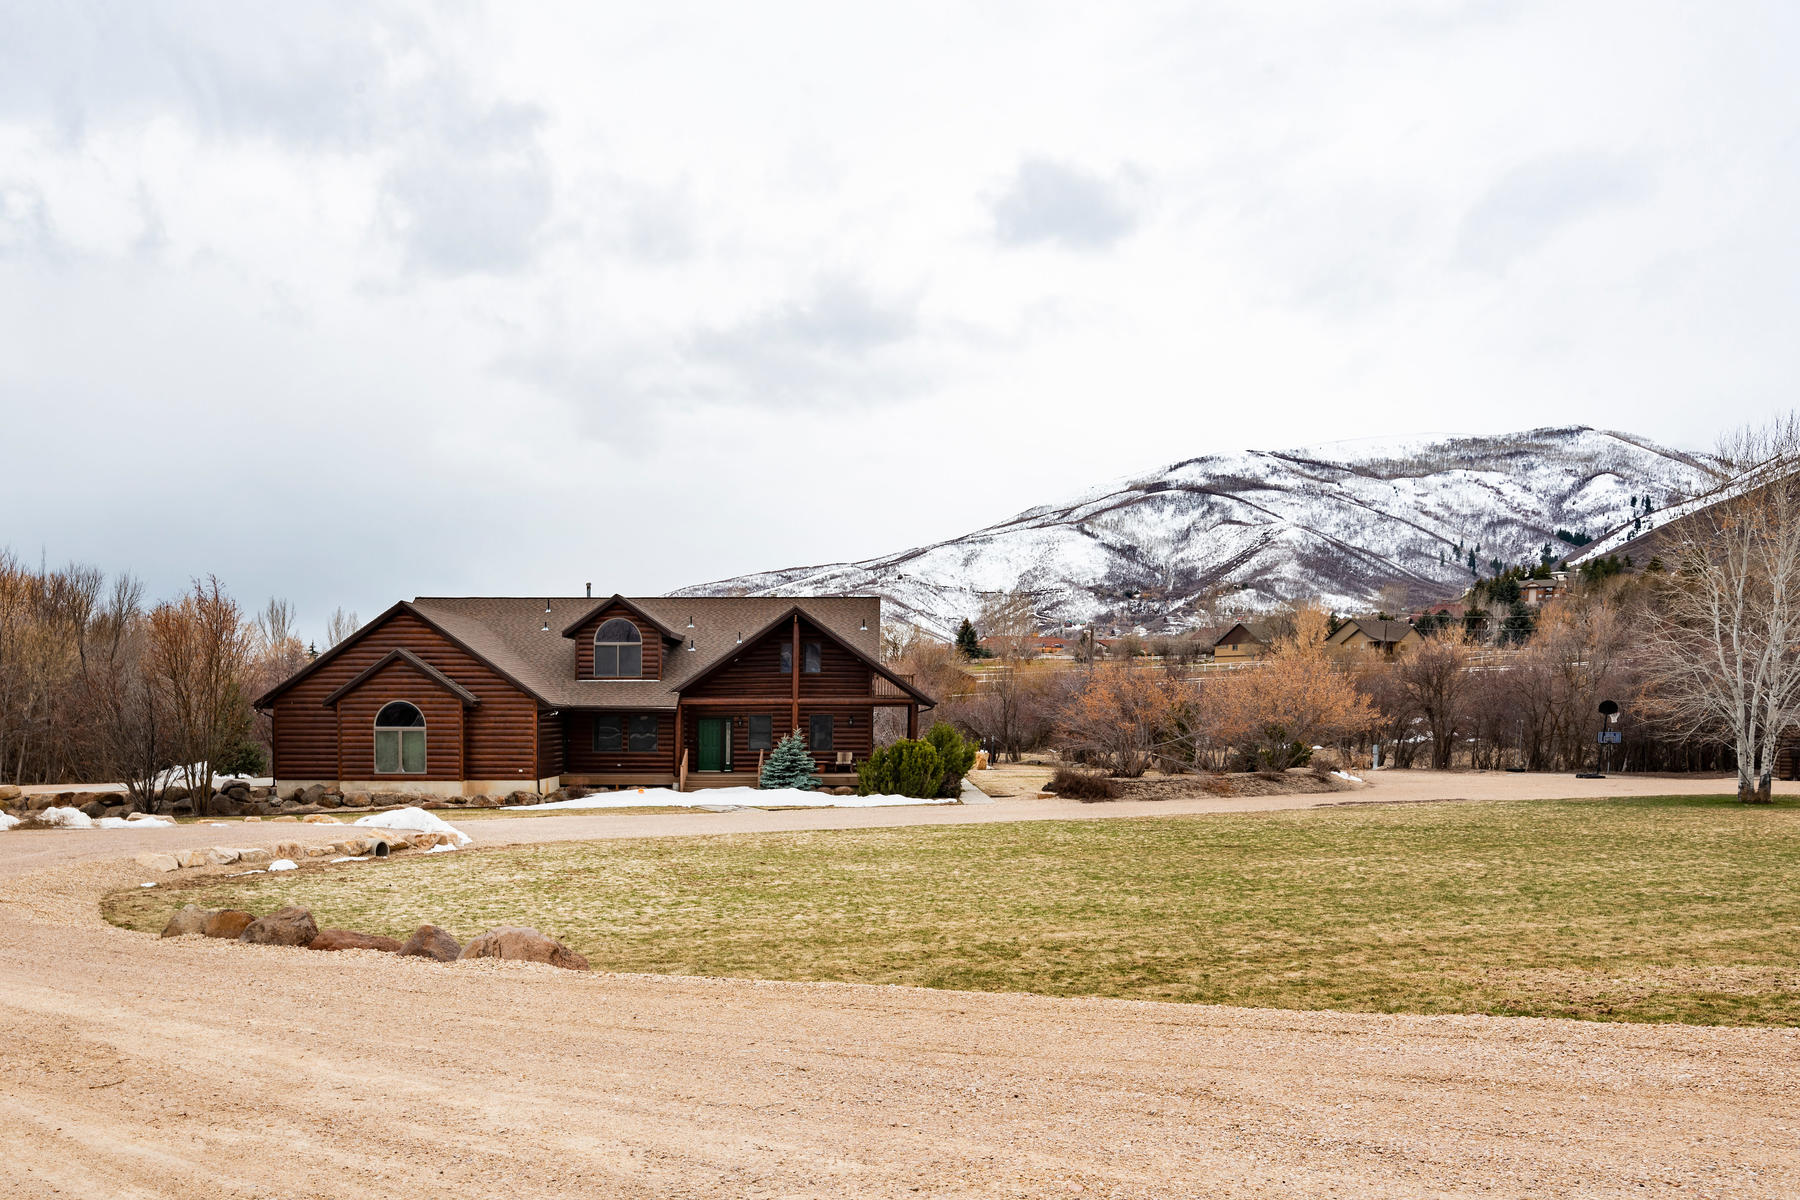 Single Family Homes for Sale at Custom Log Home on 2.19 Acres 535 Cari Lane, Midway, Utah 84049 United States